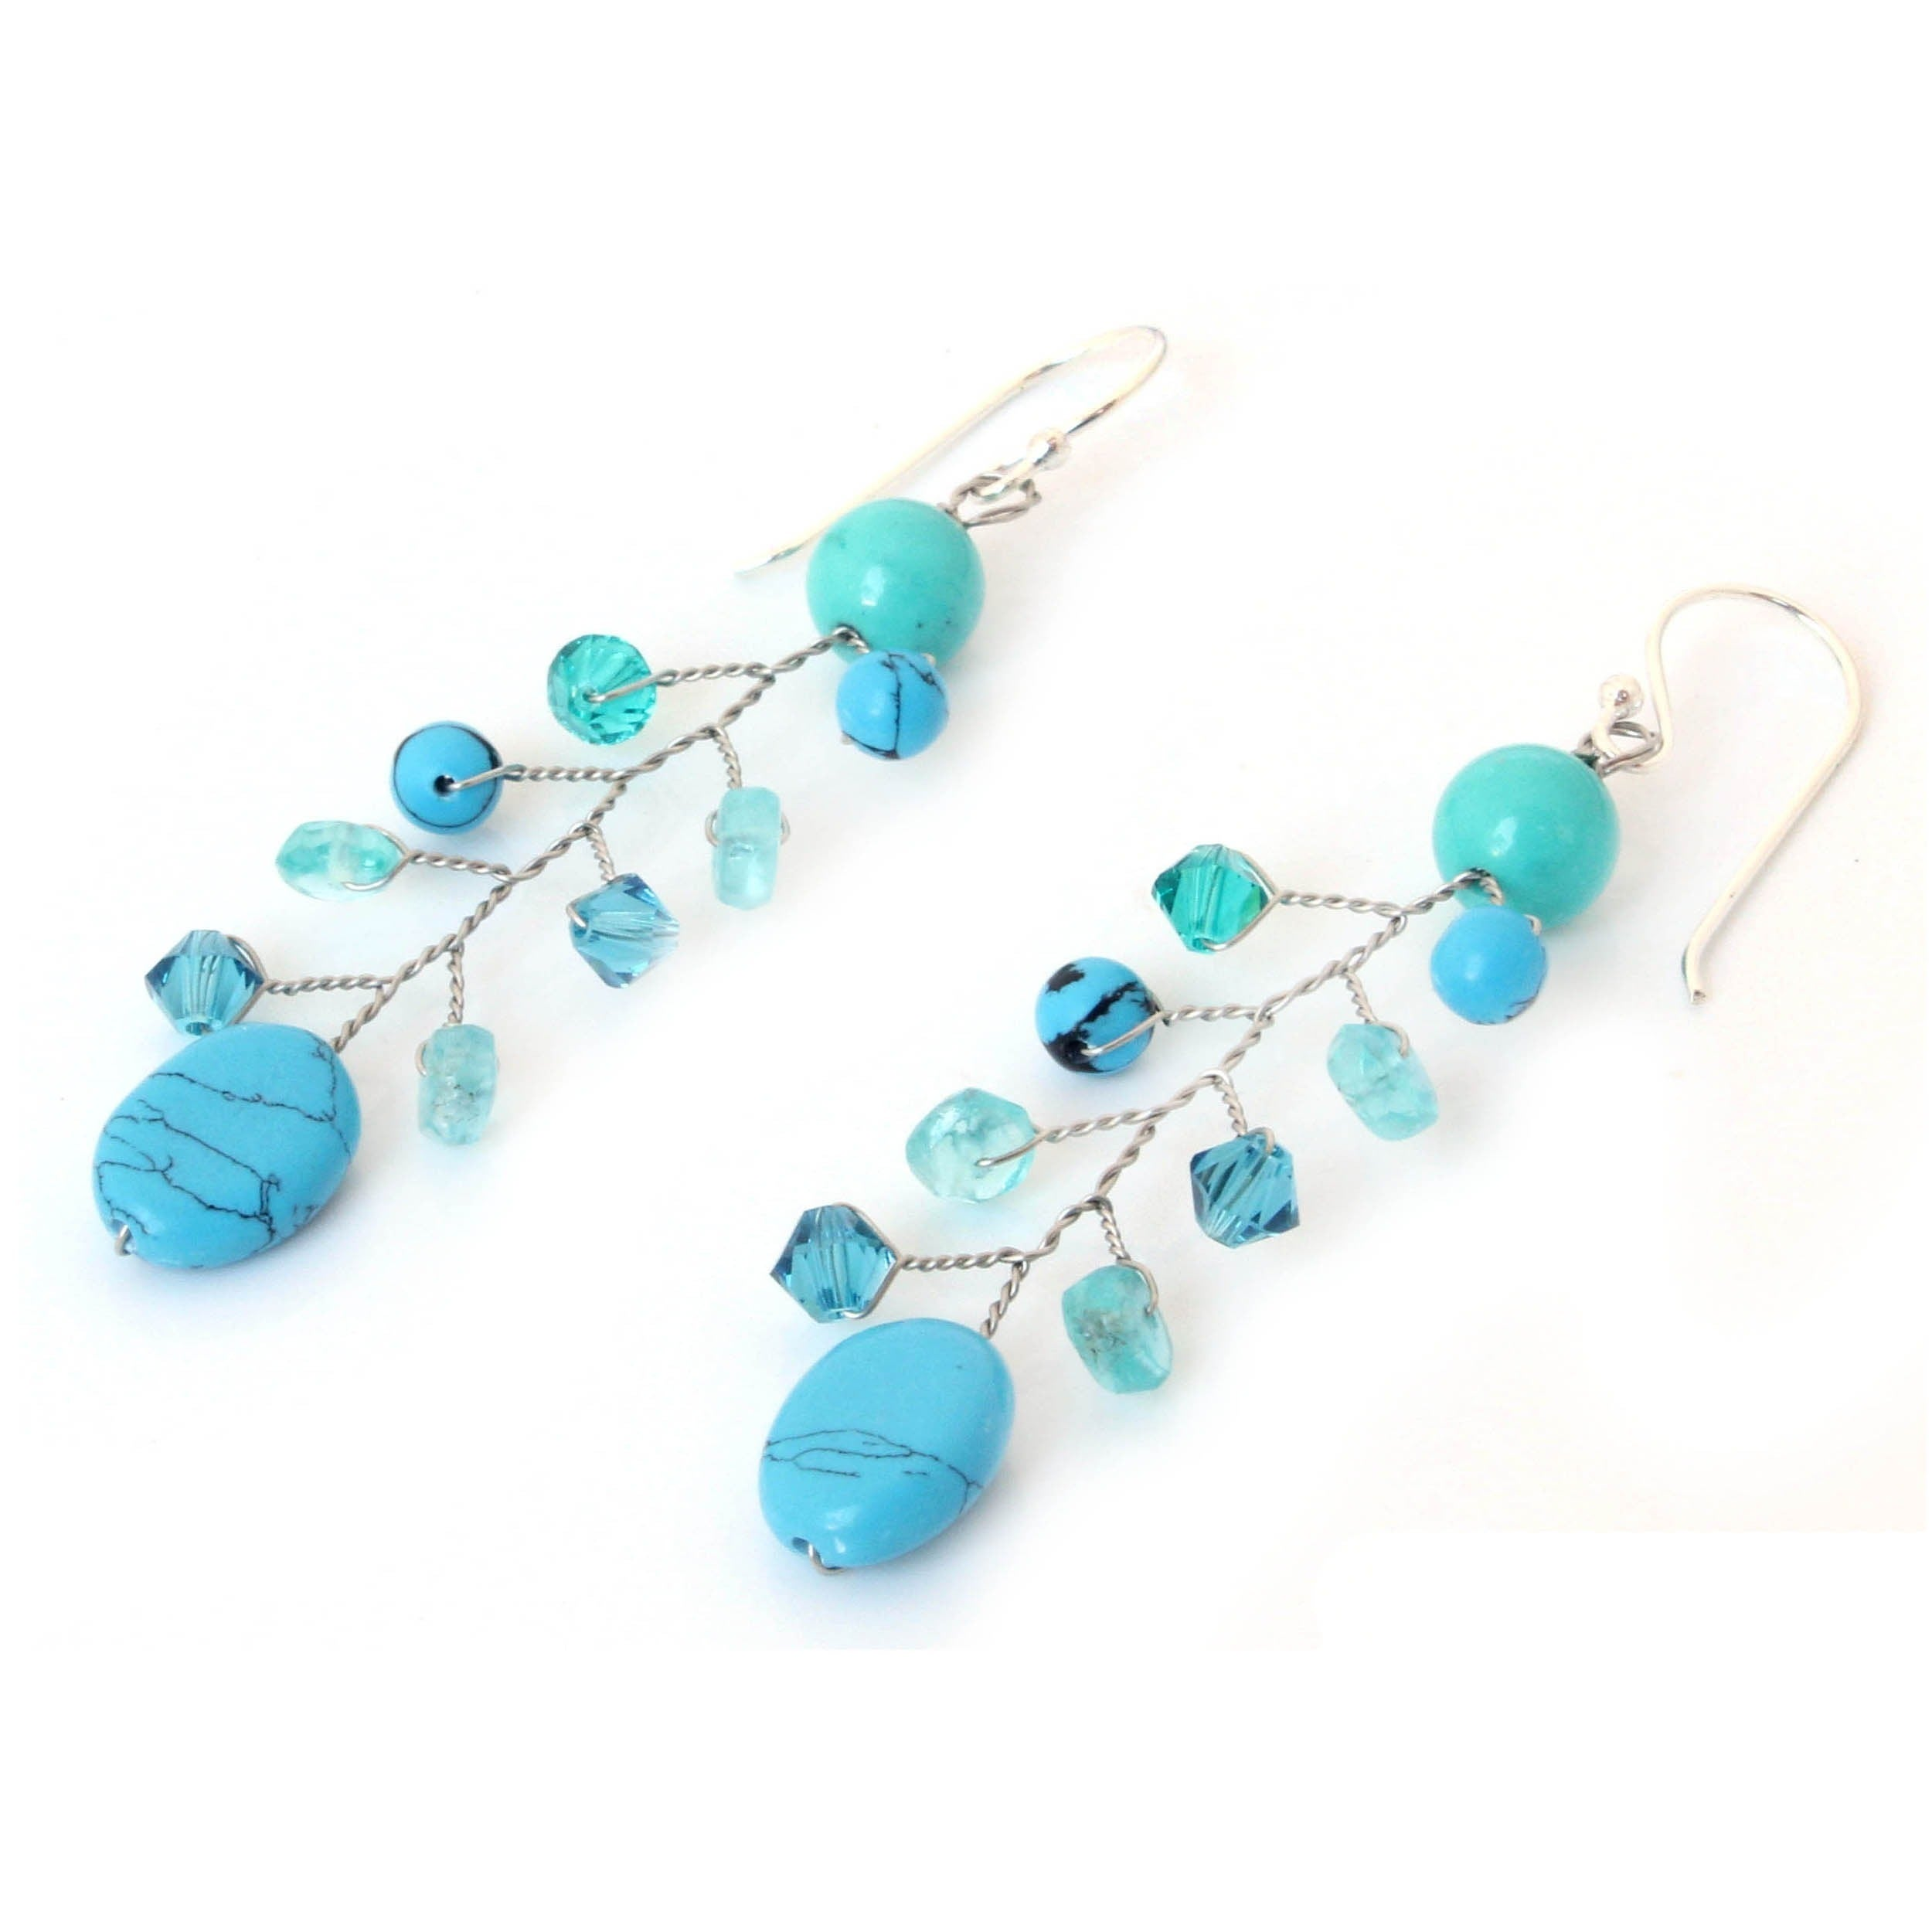 apatite with topaz chalcedony design and penelope cluster blue tanzanite the earrings